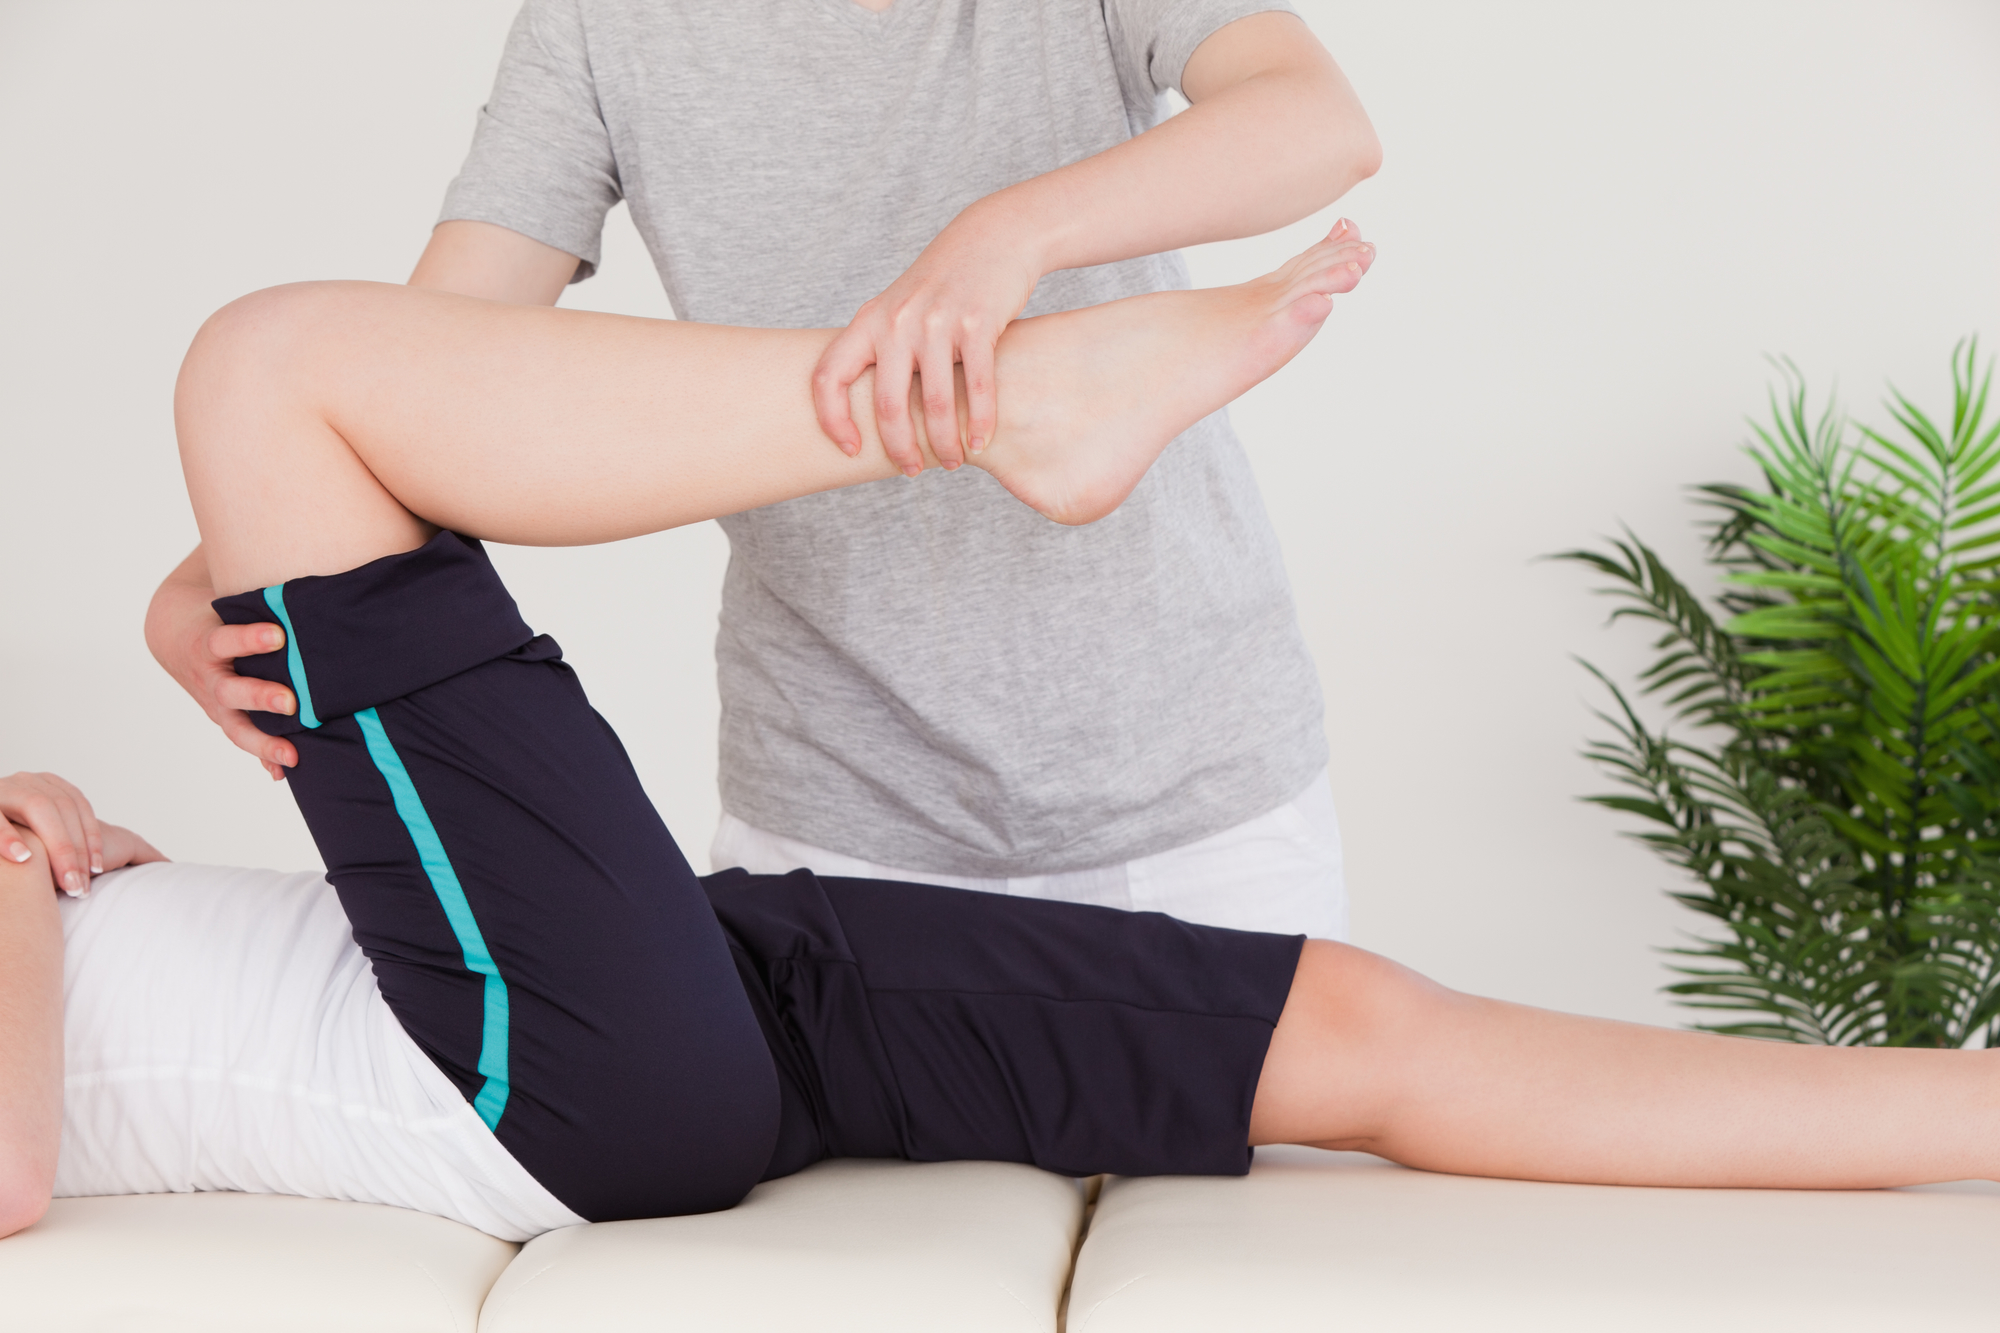 Assisted Stretch Therapy